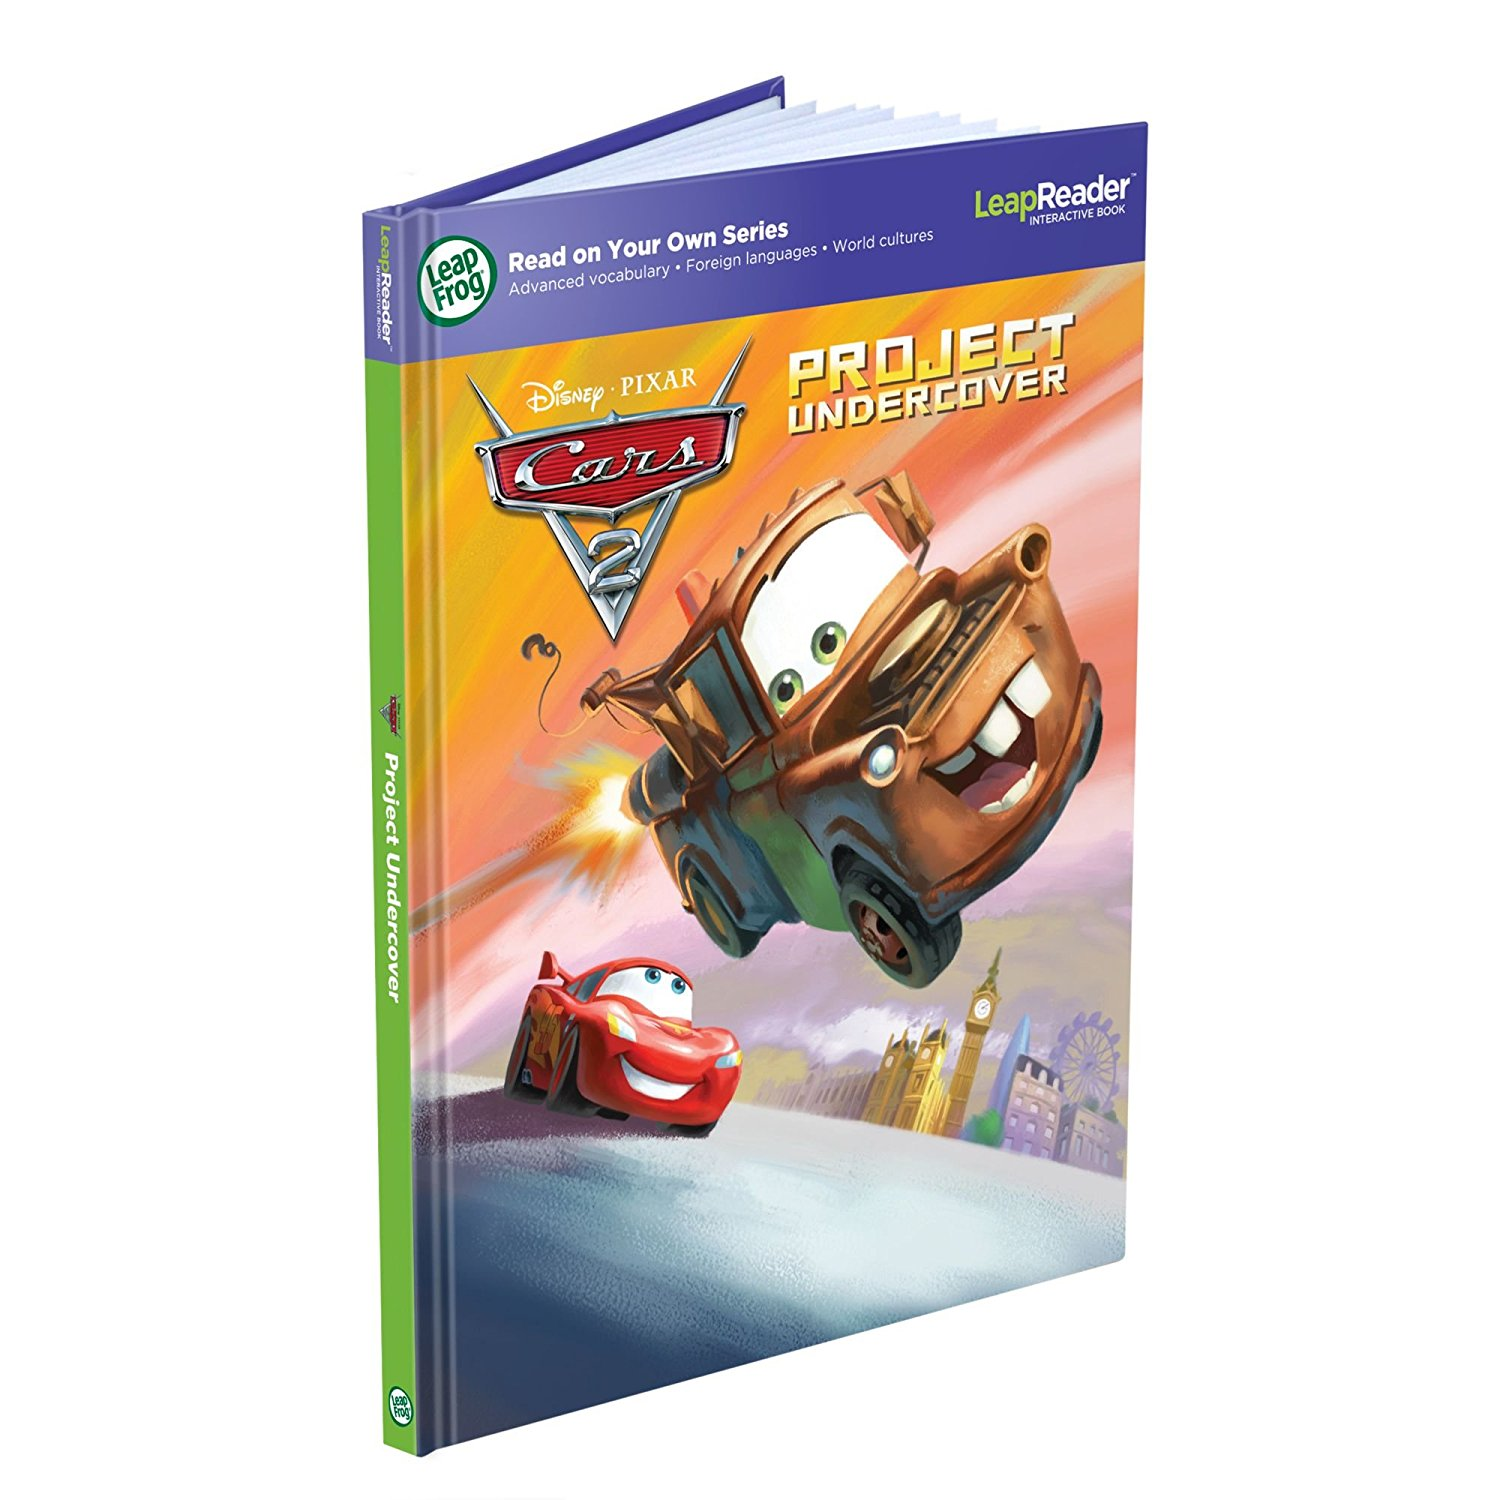 LeapReader Book: Disney/Pixar Cars 2: Project Undercover (works with Tag) By LeapFrog Ship from US